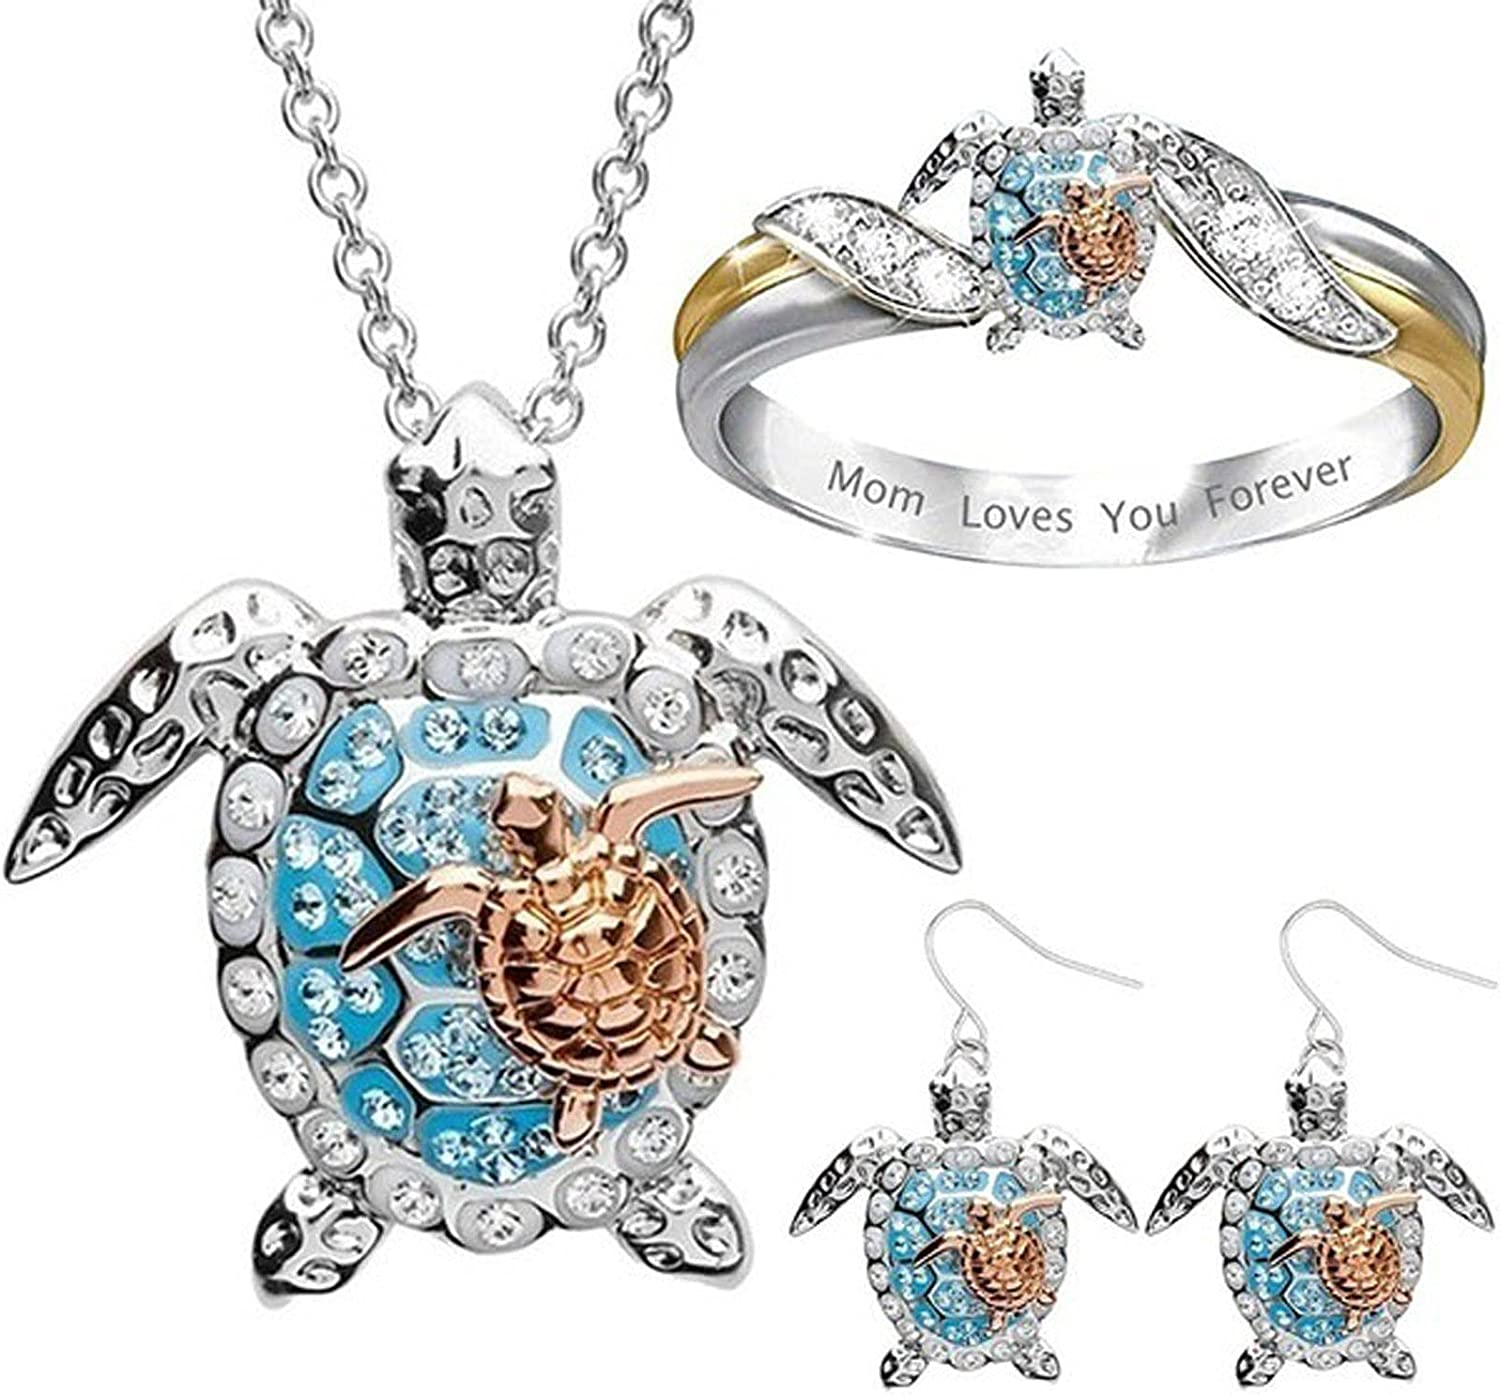 Parodais Jewelry Sets for Women, Ladies Necklace Turtle Animal Necklace 1 Ring 1 Necklace and 1 Pair of Earrings